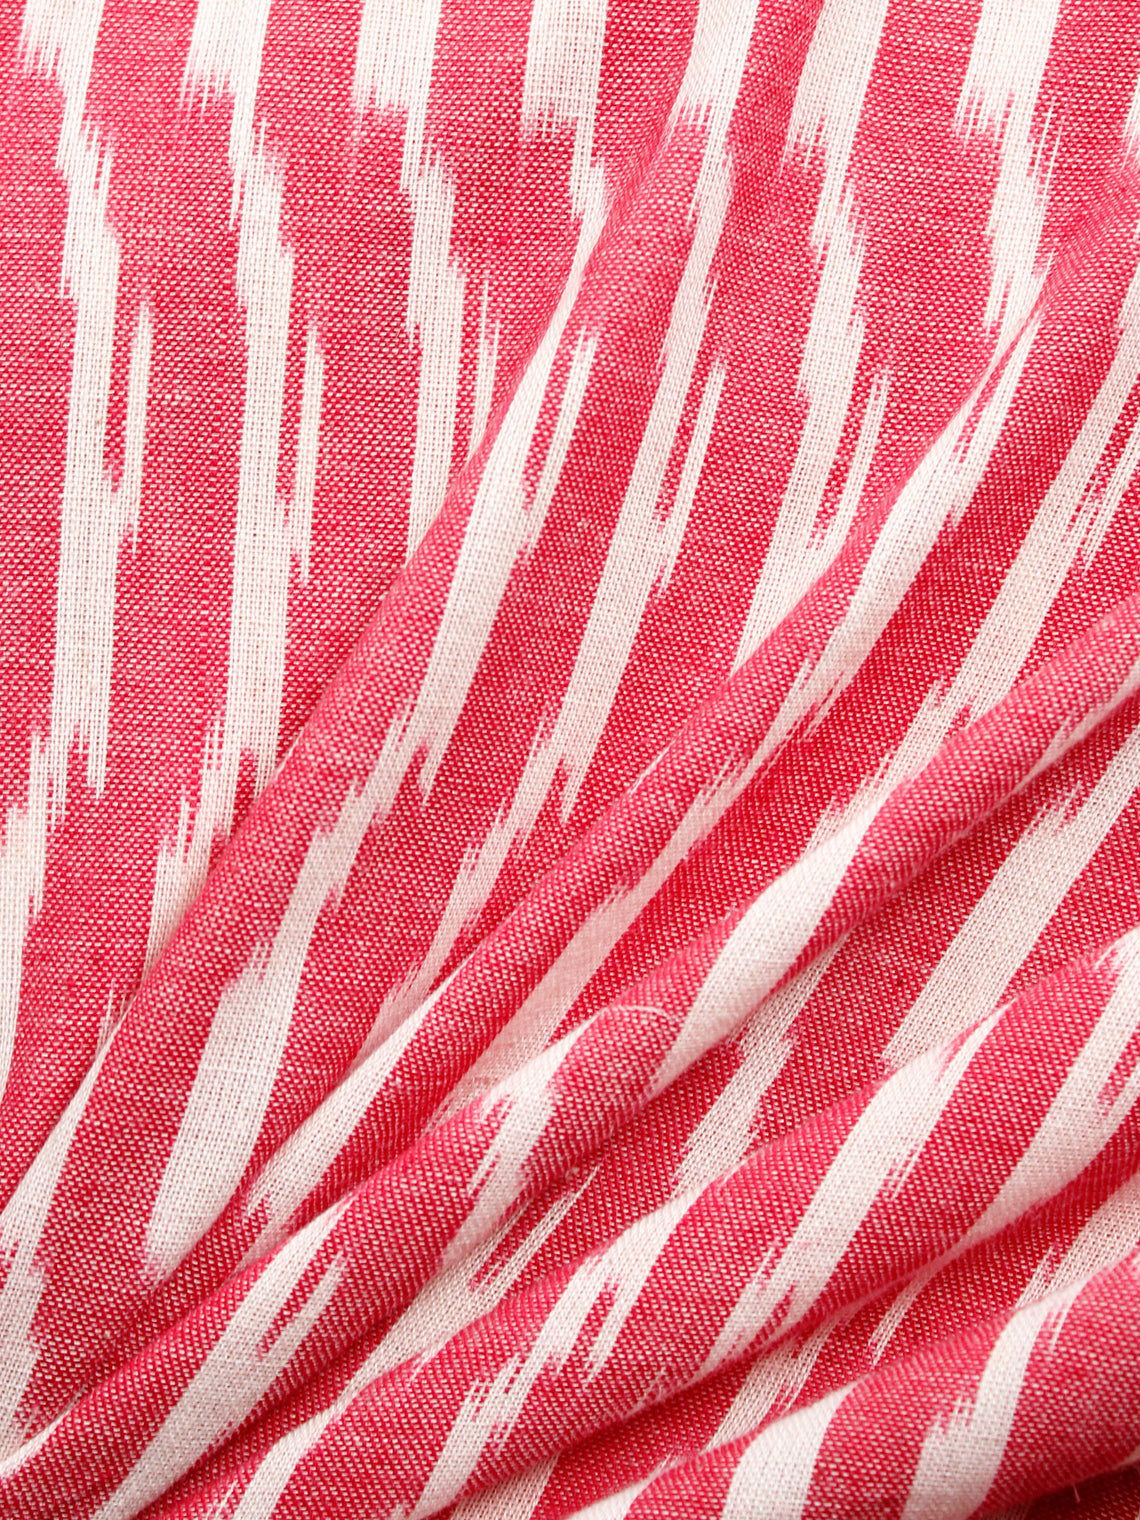 Coral Red Ivory Hand Woven Ikat Handloom Cotton Fabric Per Meter - F002F1476